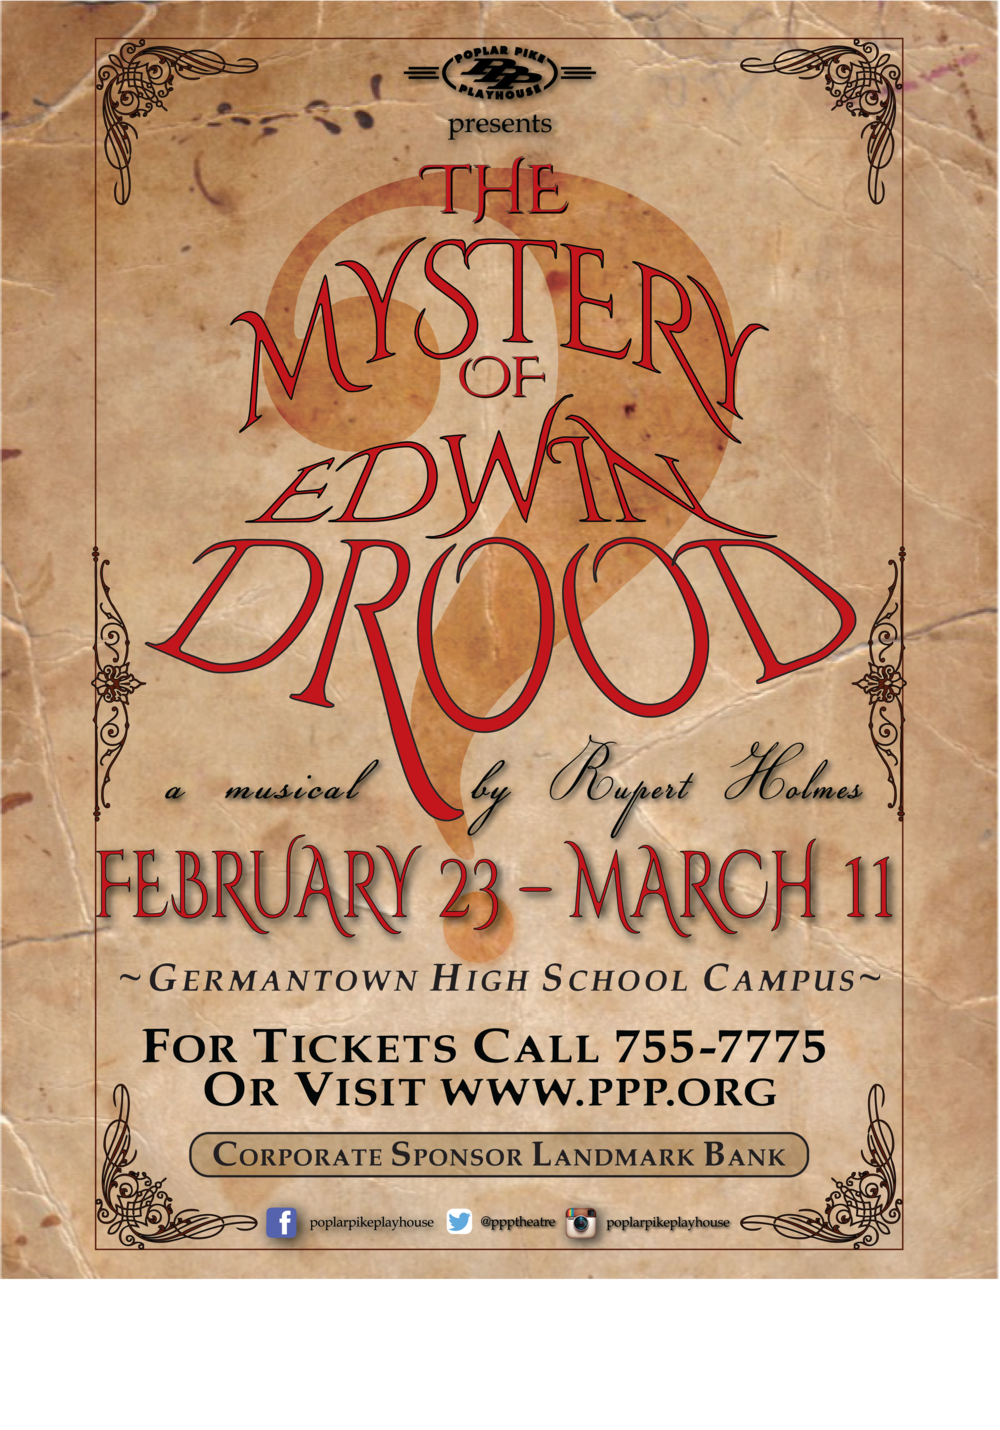 Drood Poster - Poster (OUTLINE).png